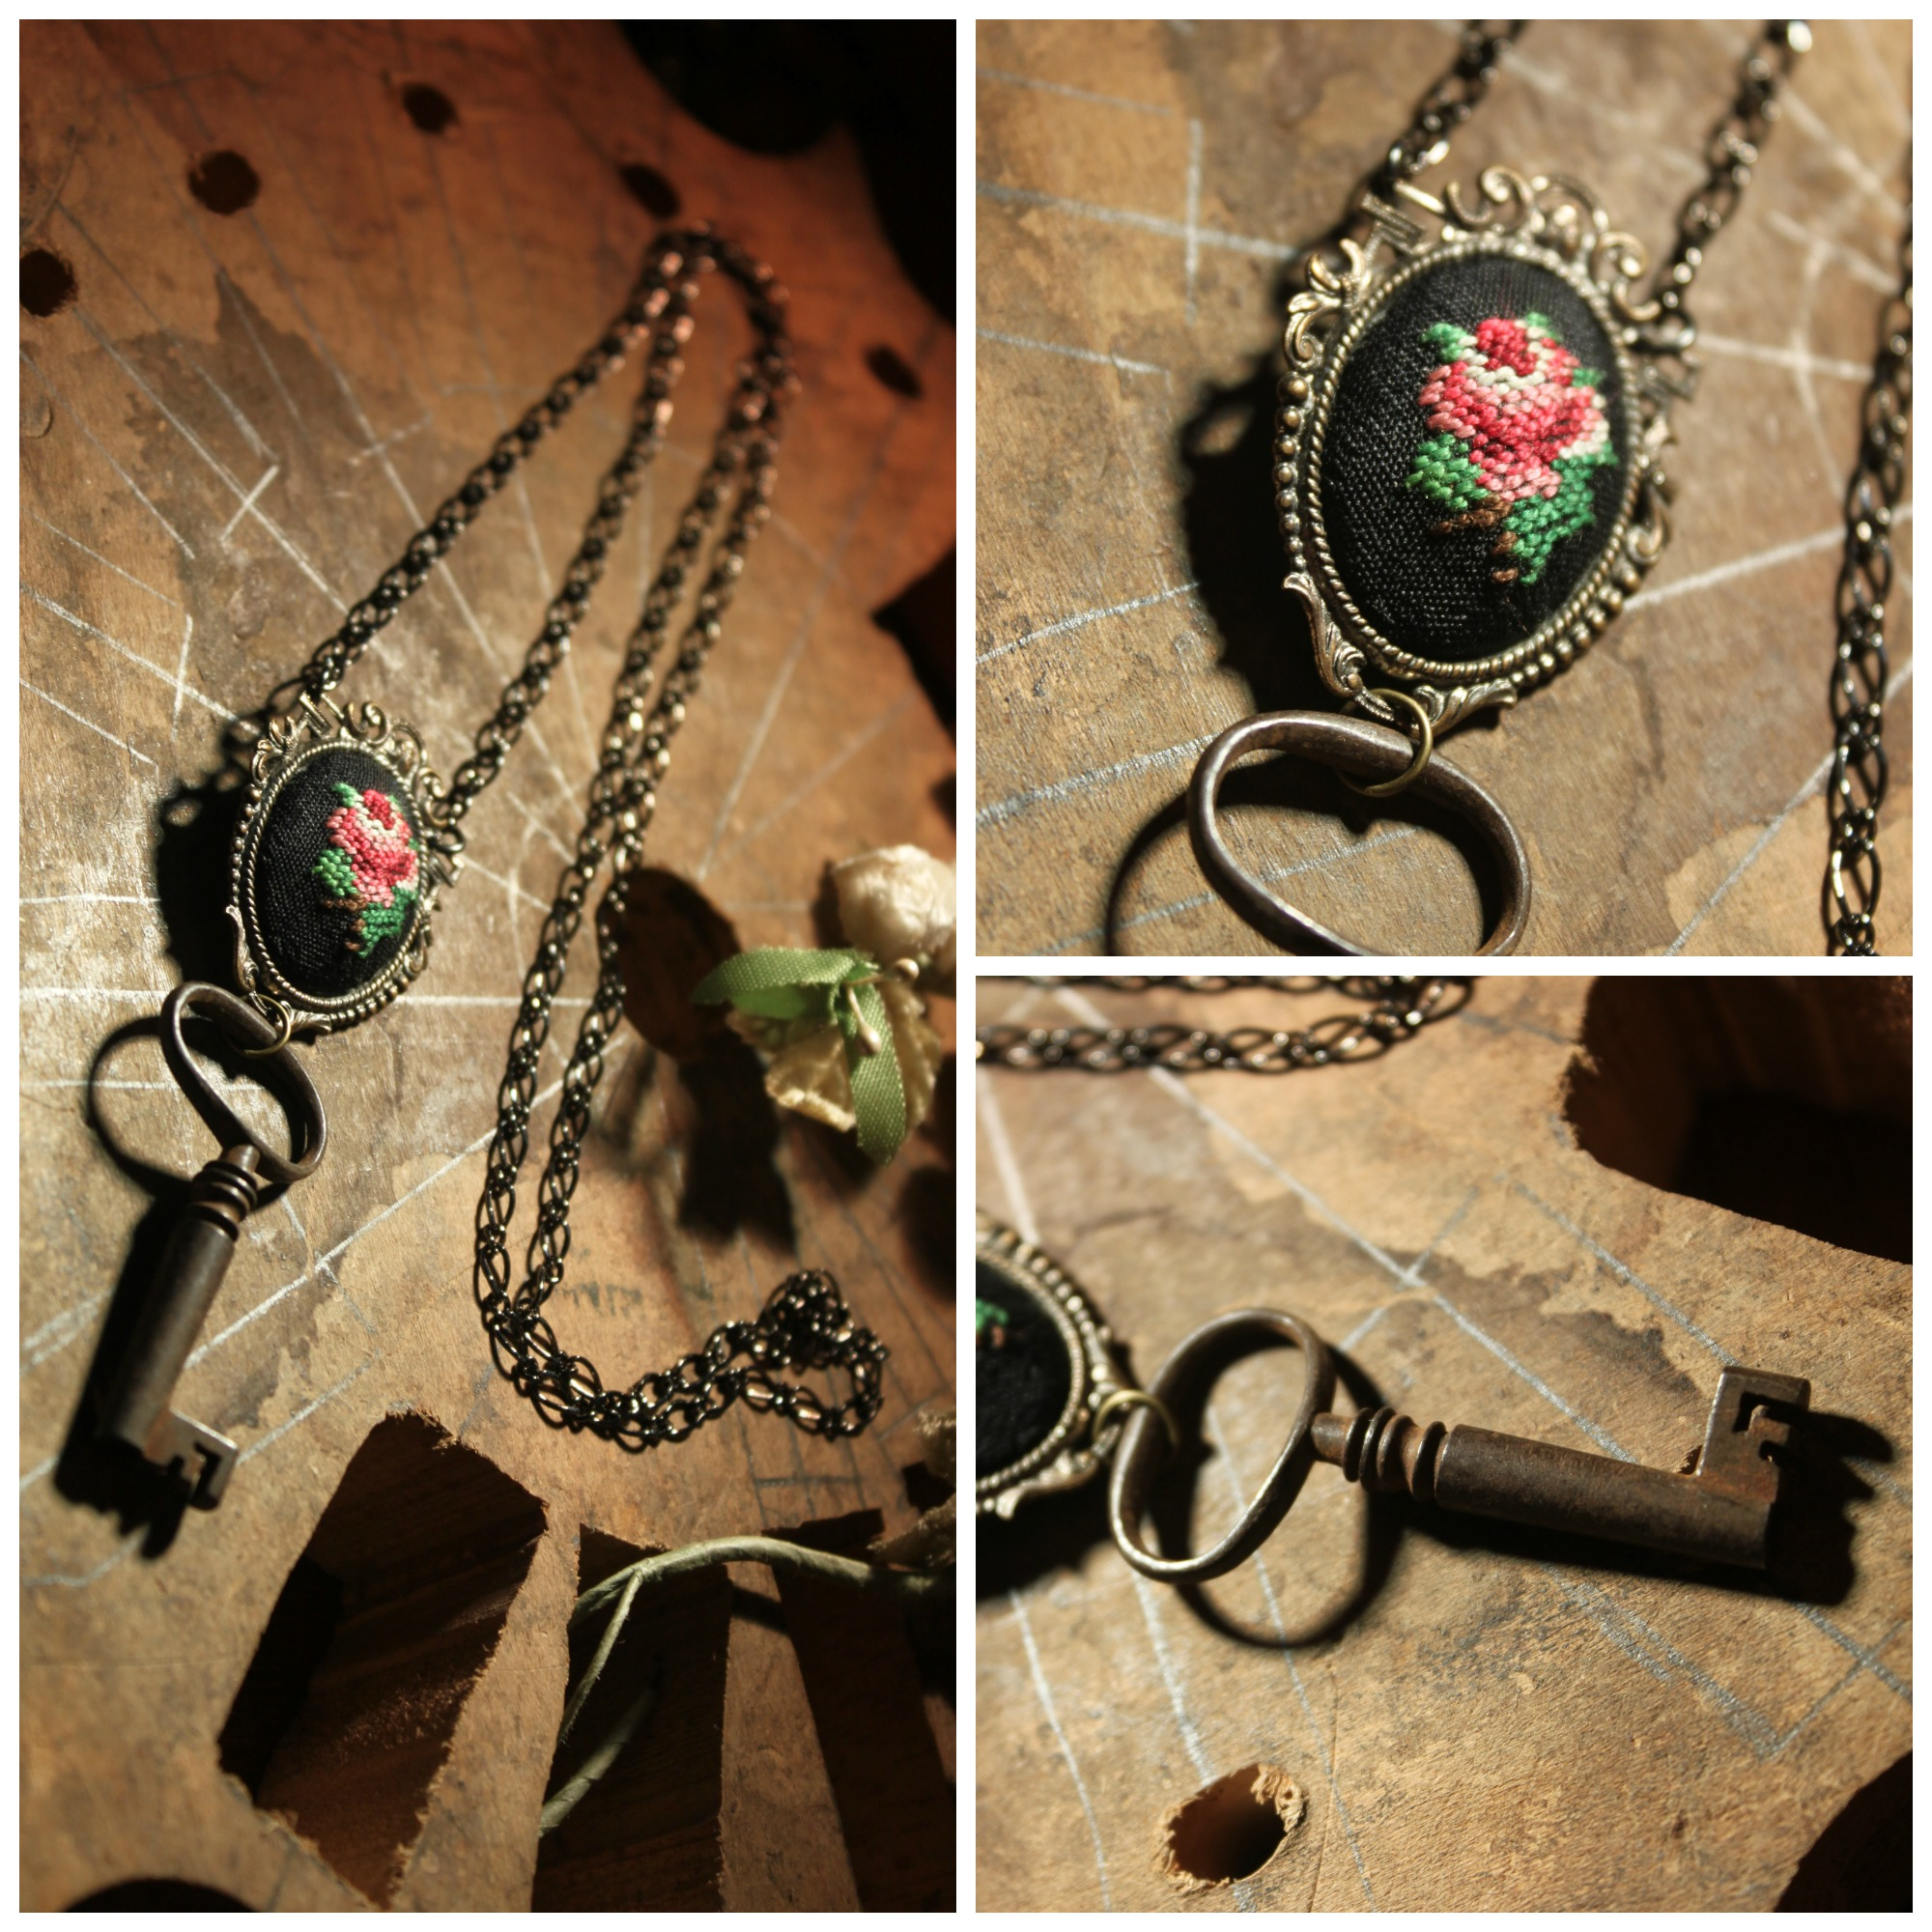 Embroidered Rose Necklace Collage